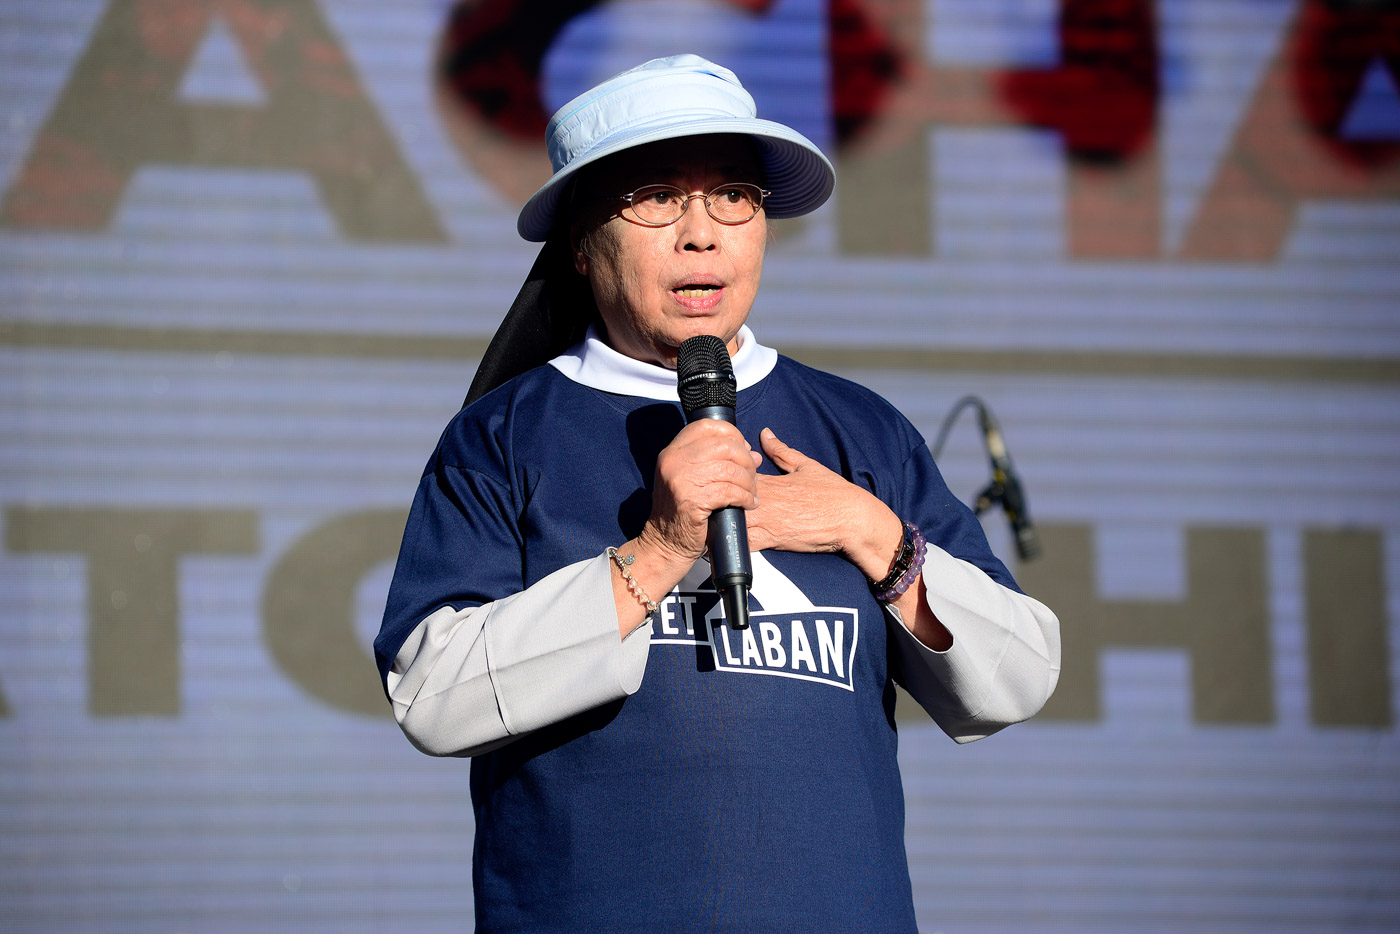 Sister Mary John Mananzan takes the stage at the rally. Photo by Maria Tan/Rappler